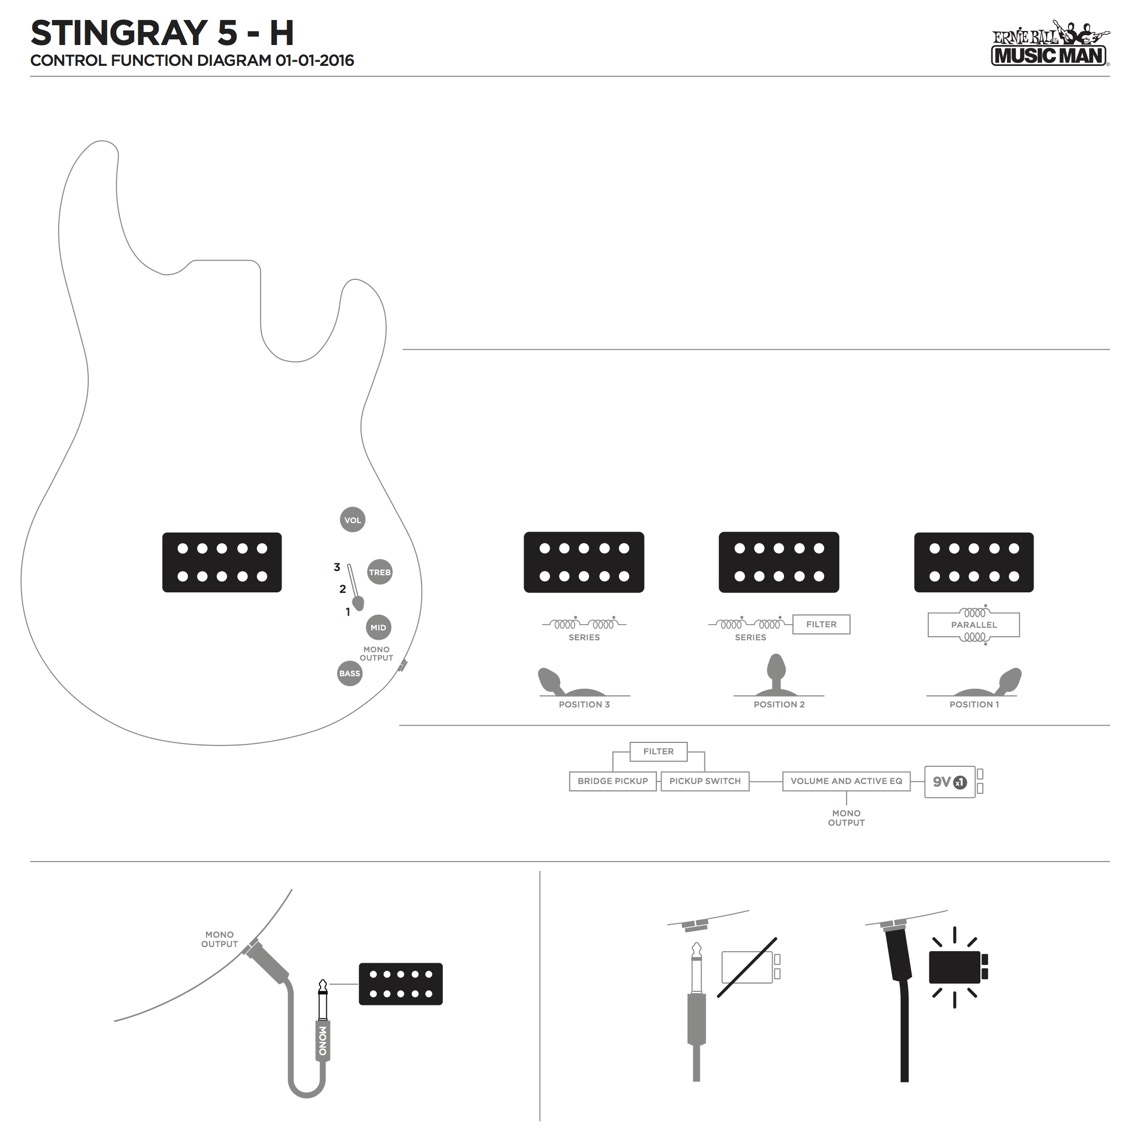 Stingray 5 Basses Ernie Ball Music Man Free Download Gsr200 Wiring Diagram Pickup Configuration 1 Pdf